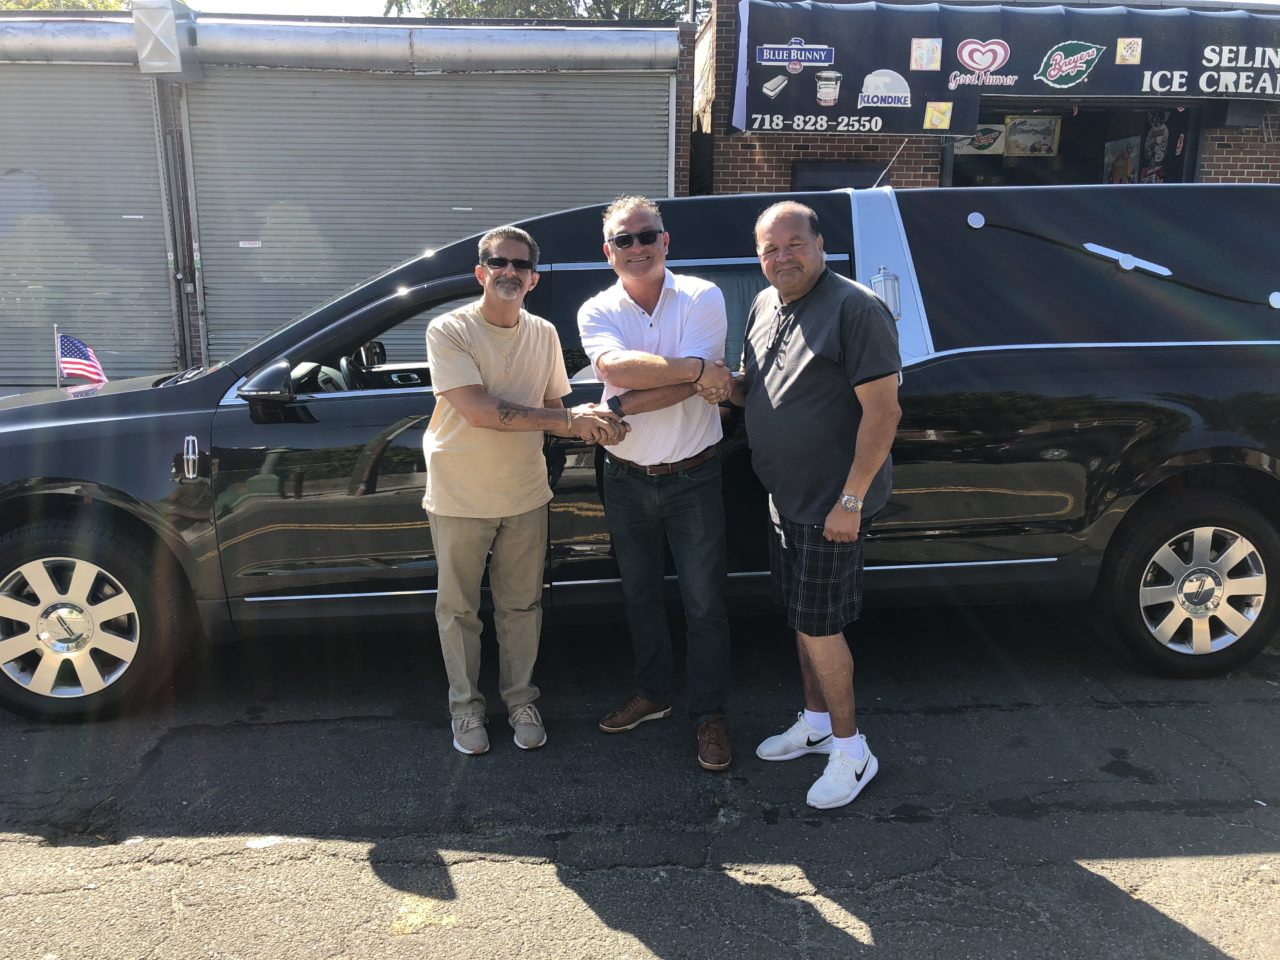 New Delivery: 2013 Lincoln Funeral Hearse delivered to M & J Funeral Livery in Bronx, New York